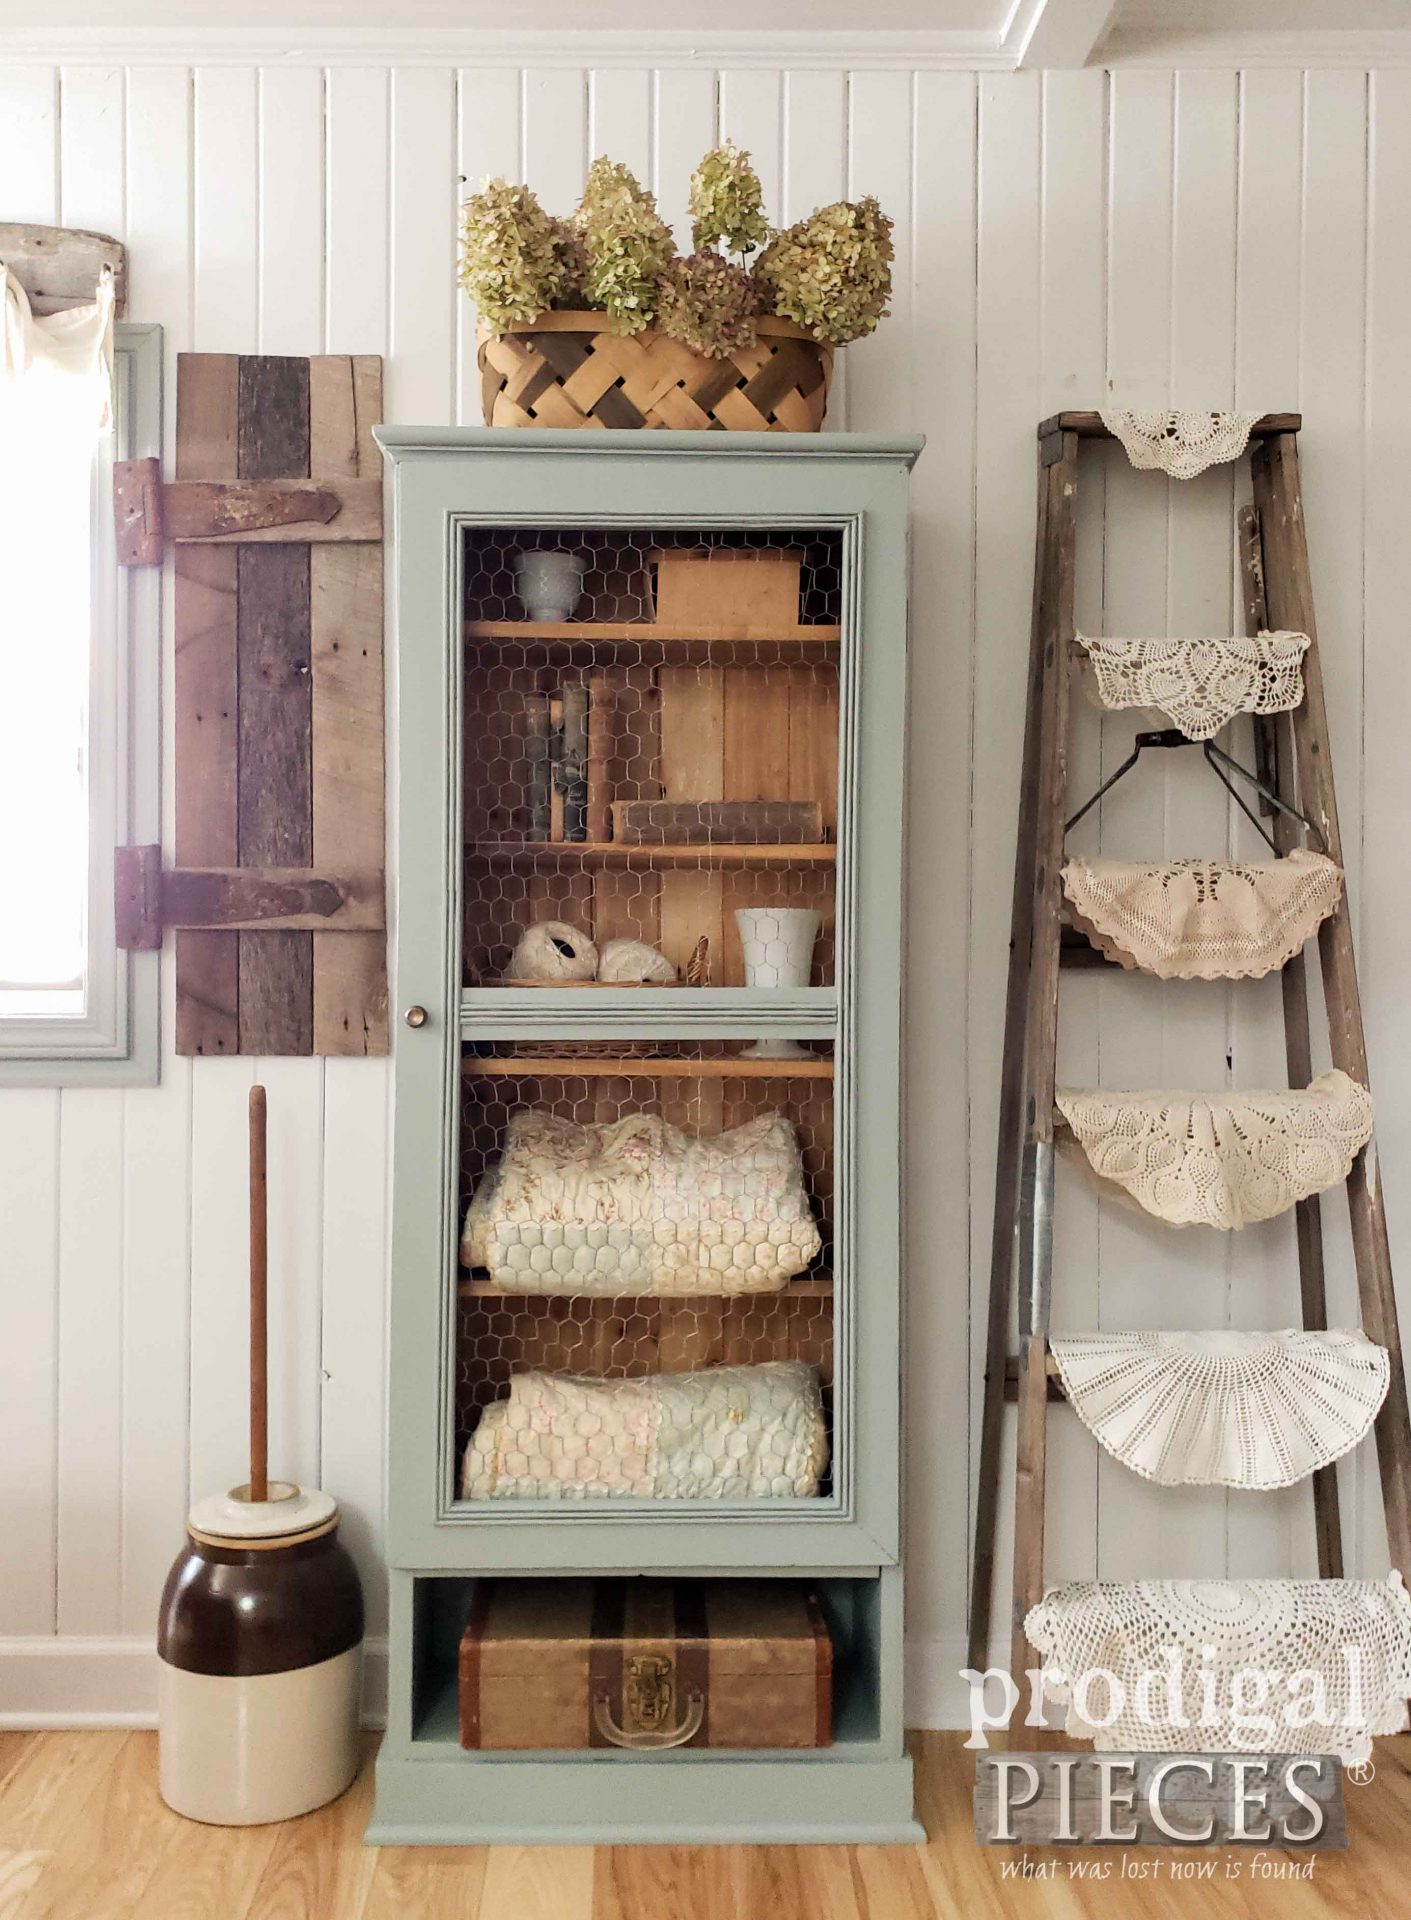 Rustic Farmhouse Cupboard from an Upcycled Gun Cabinet by Larissa of Prodigal Pieces | prodigalpieces.com #prodigalpieces #diy #furniture #home #homedecor